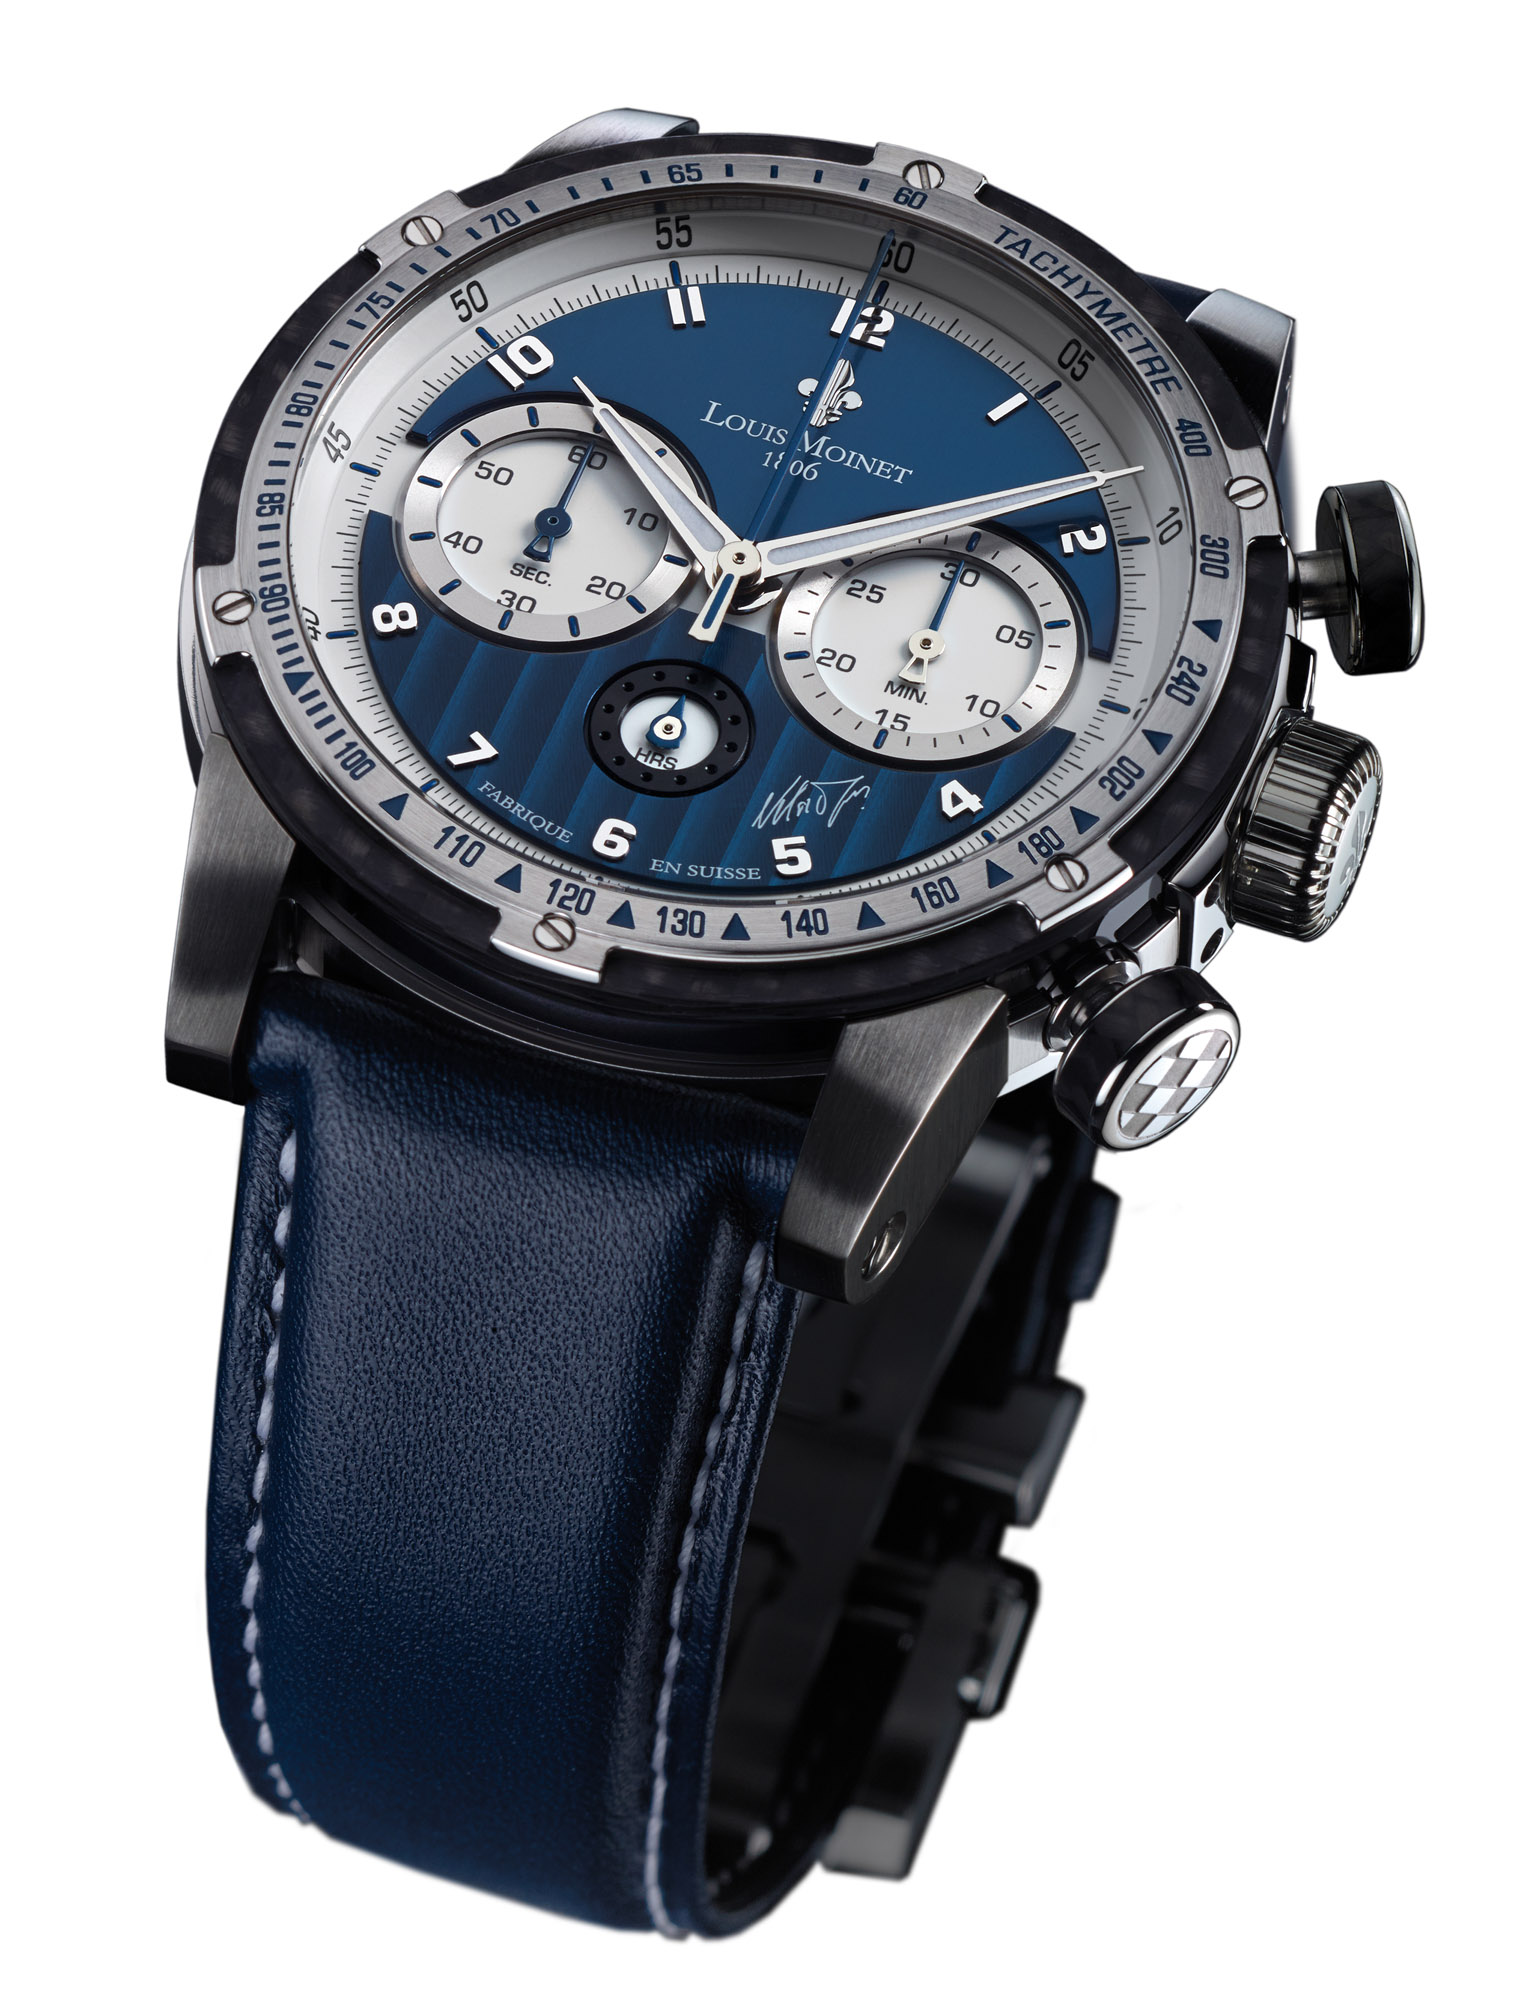 A Stylish Watch For Men-Louis Moinet Nelson Piquet Chronograph